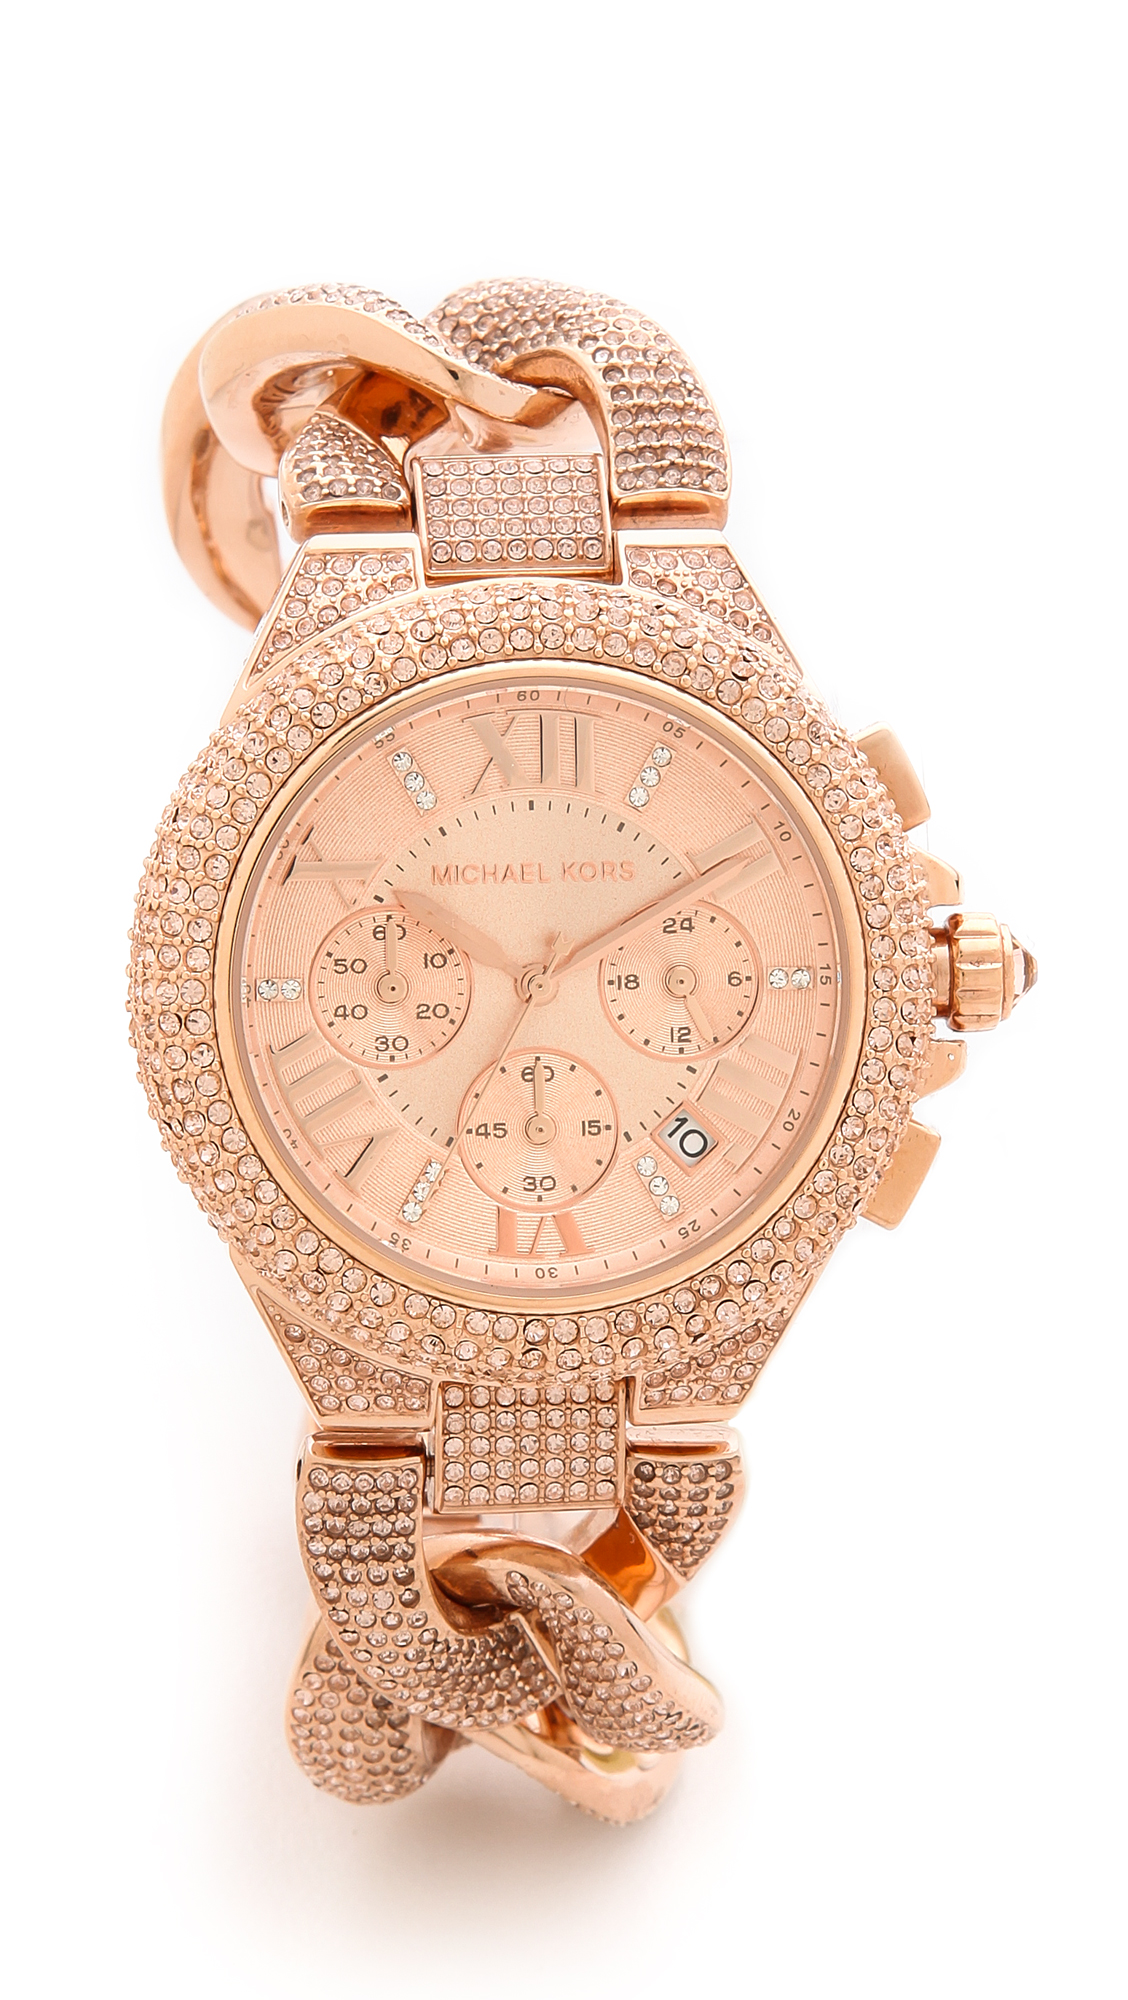 Permalink to Michael Kors Camille Rose Gold Diamond Watch